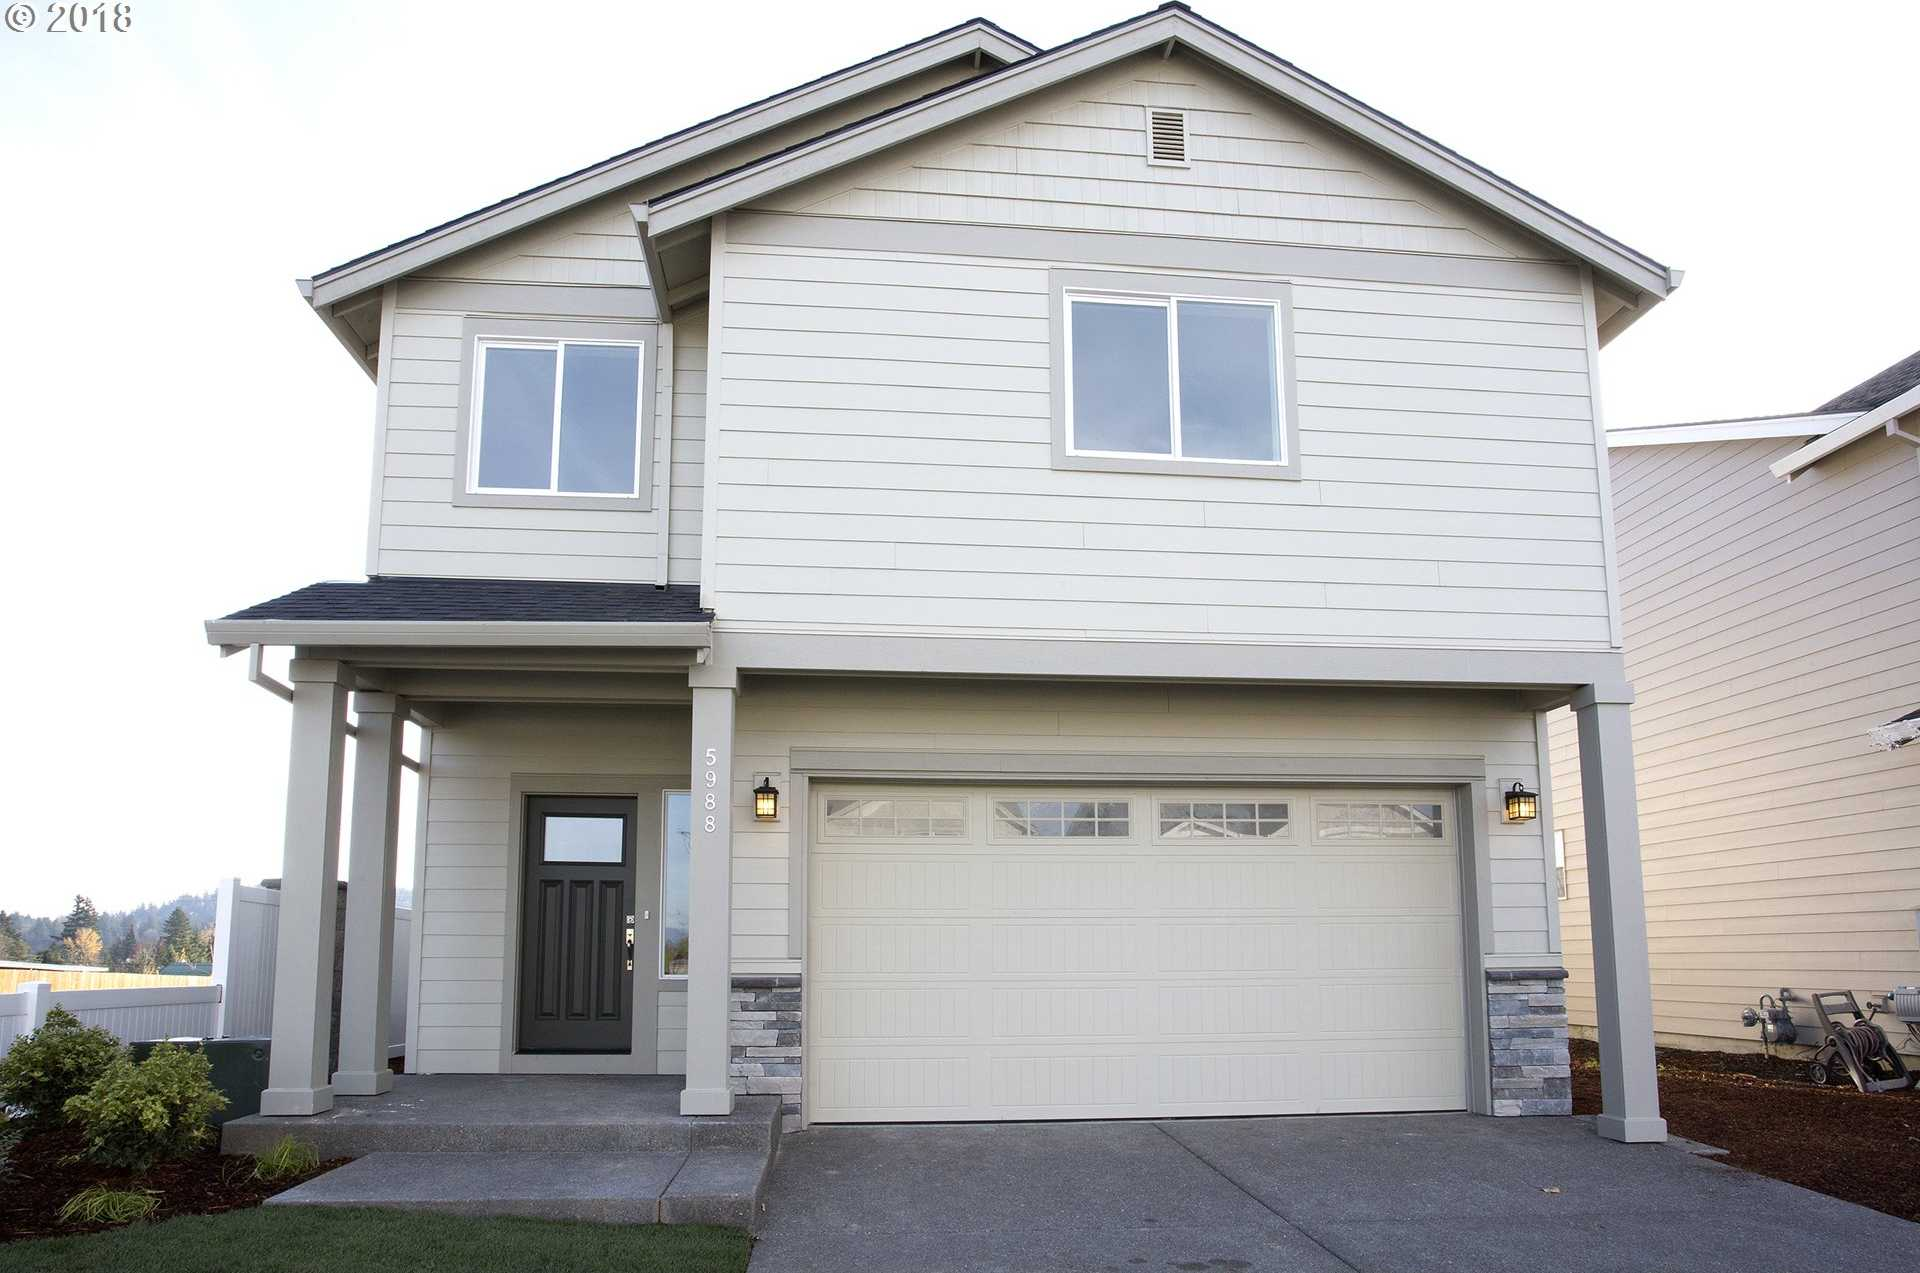 $409,000 - 4Br/3Ba -  for Sale in Samson Acres, Gresham